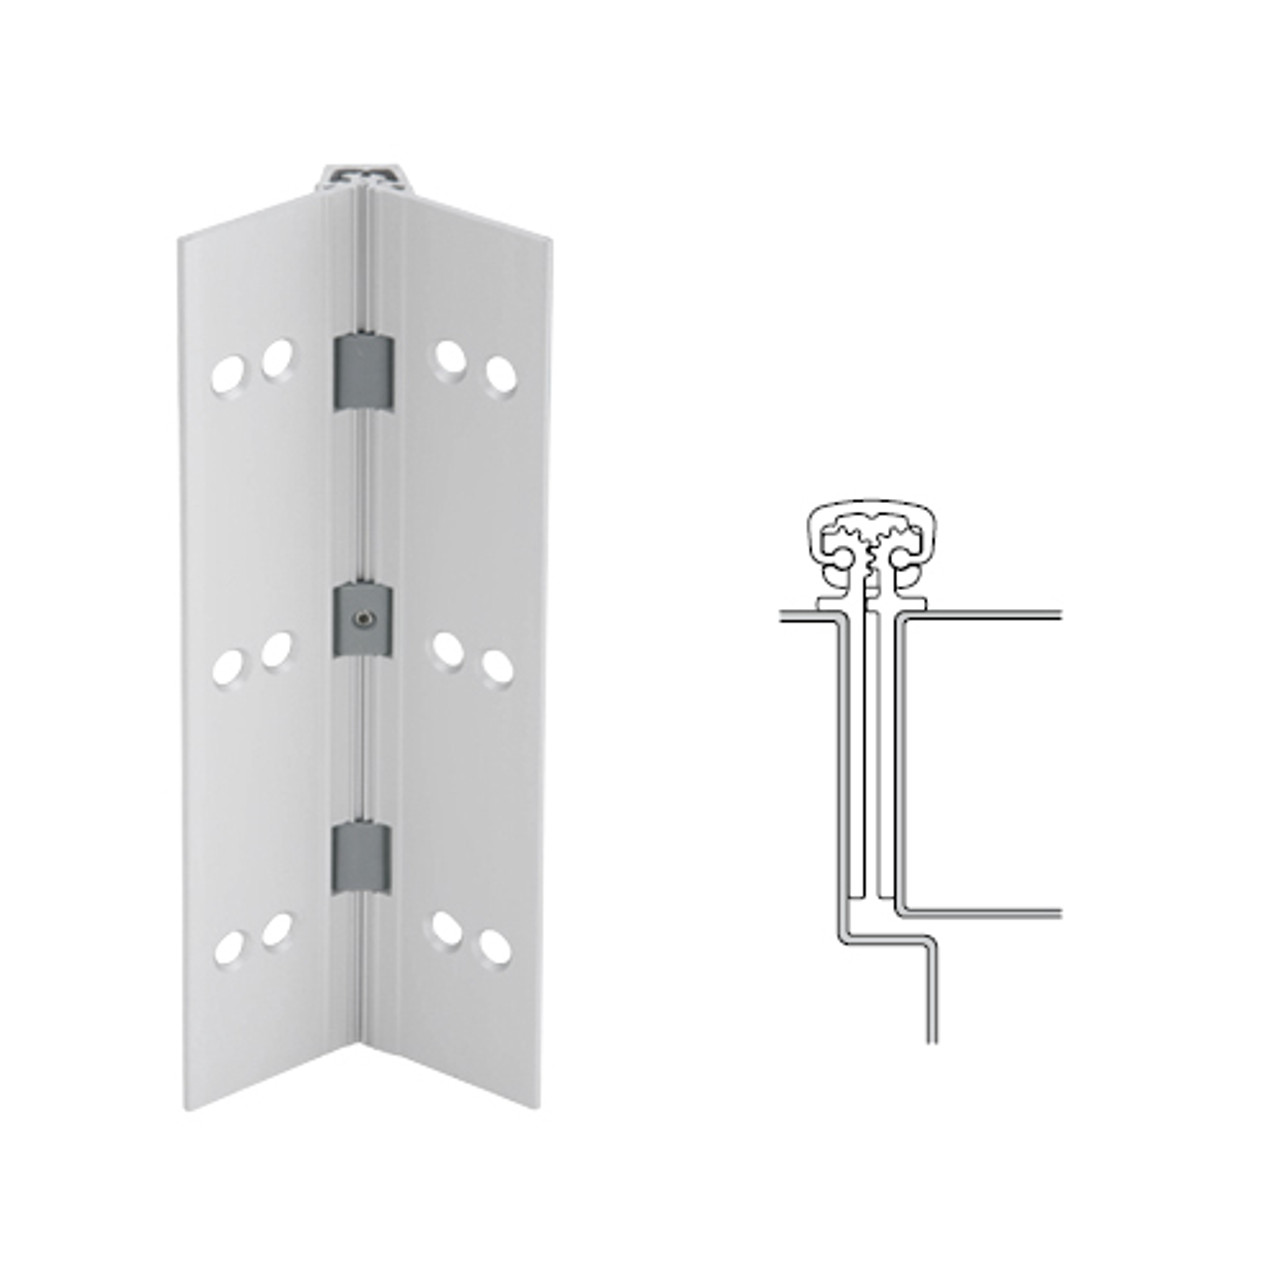 027XY-US28-85-TFWD IVES Full Mortise Continuous Geared Hinges with Thread Forming Screws in Satin Aluminum